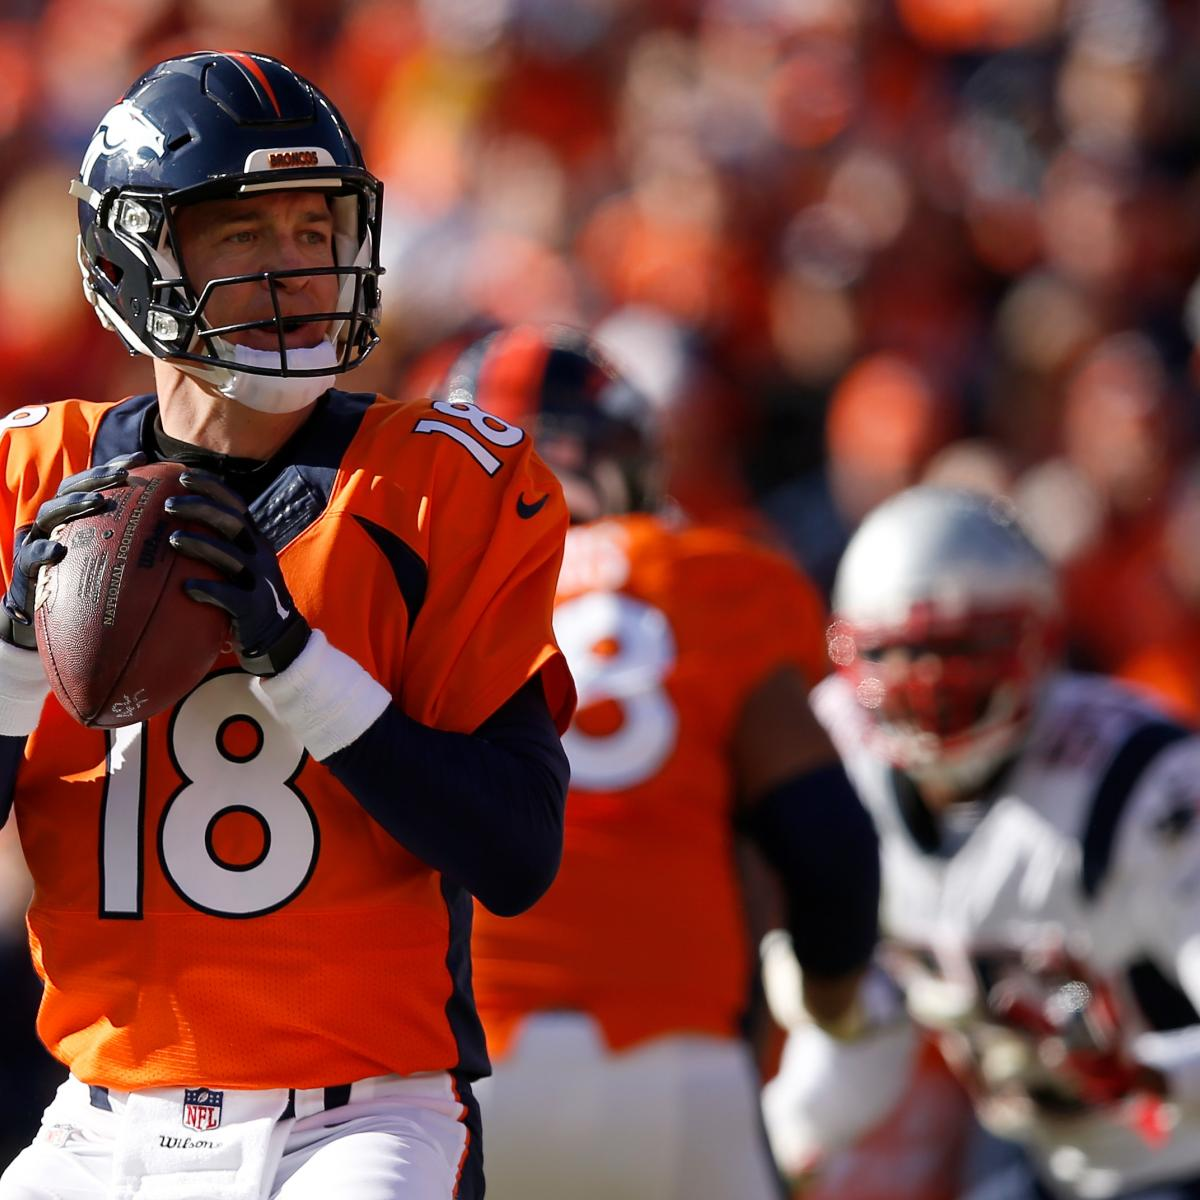 New England Patriots Vs. Denver Broncos: Live Score